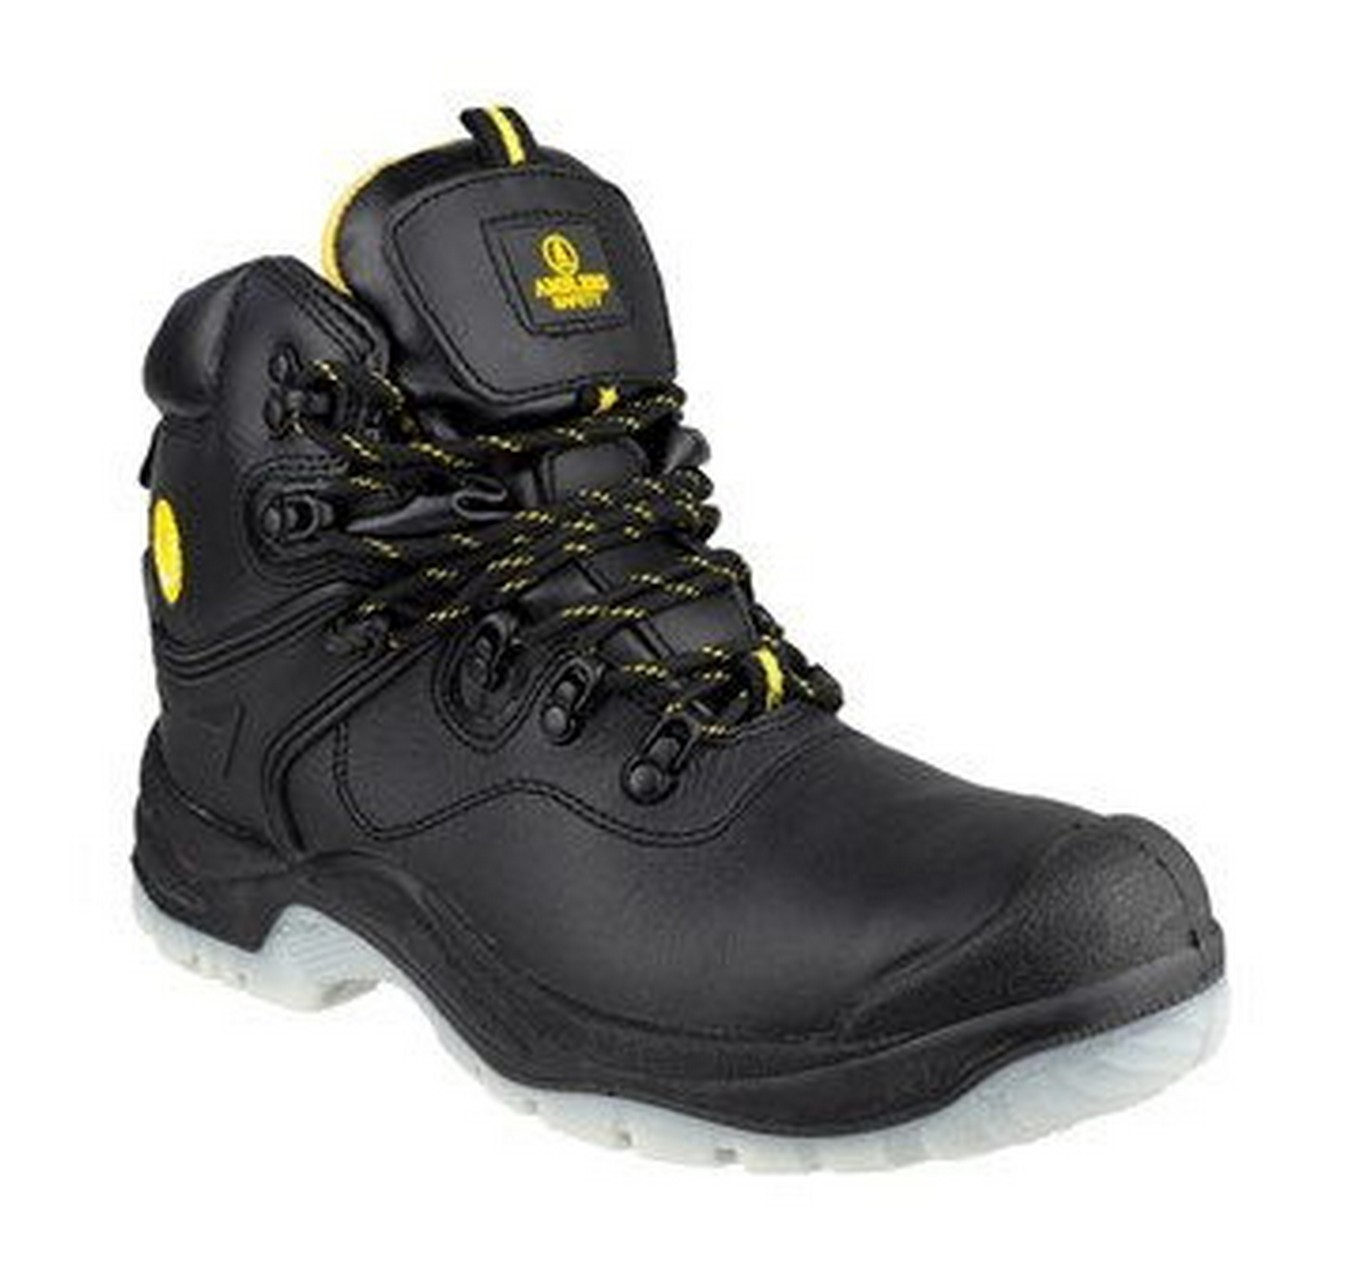 Safety Boot Amblers Fs198 12